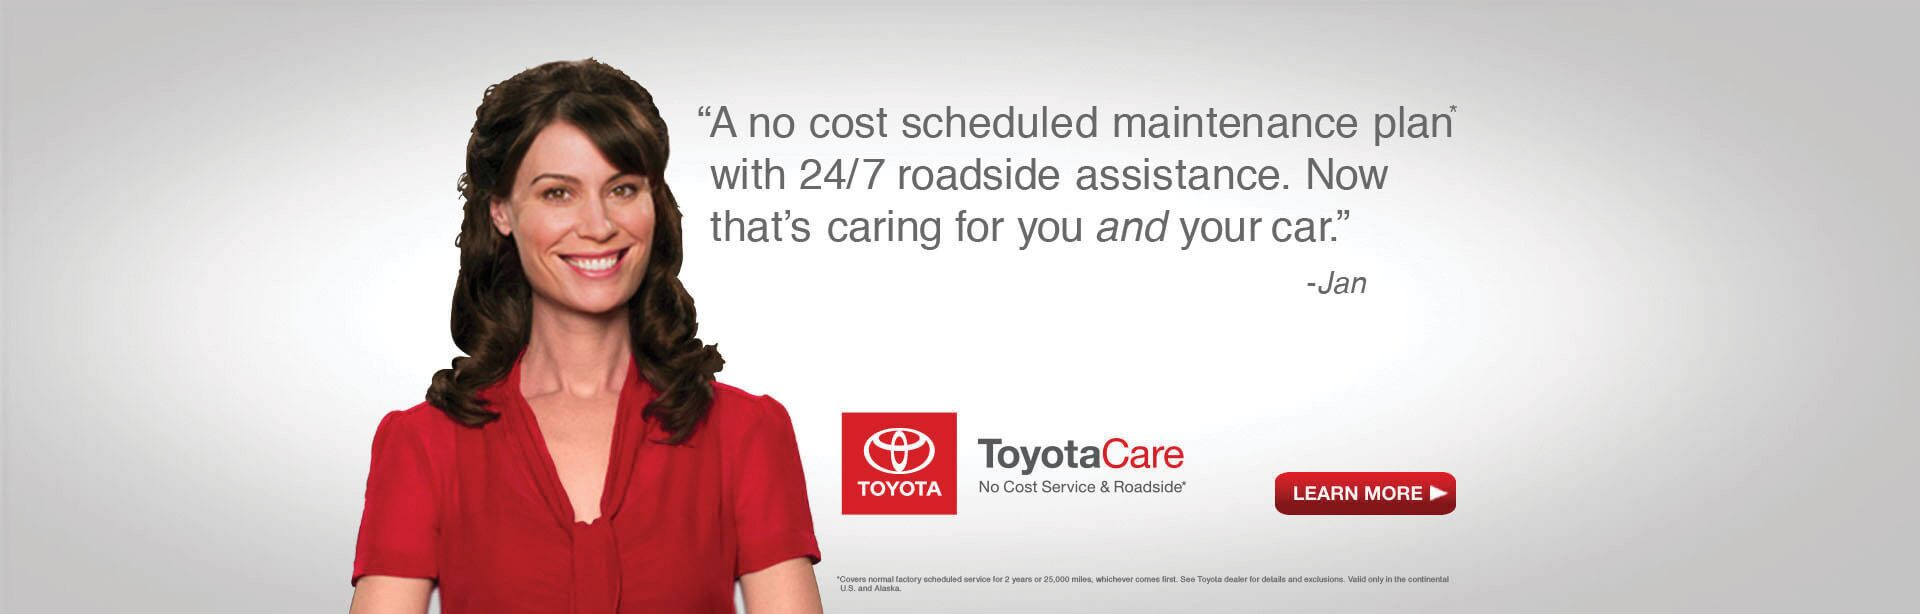 ToyotaCare at NYE Toyota